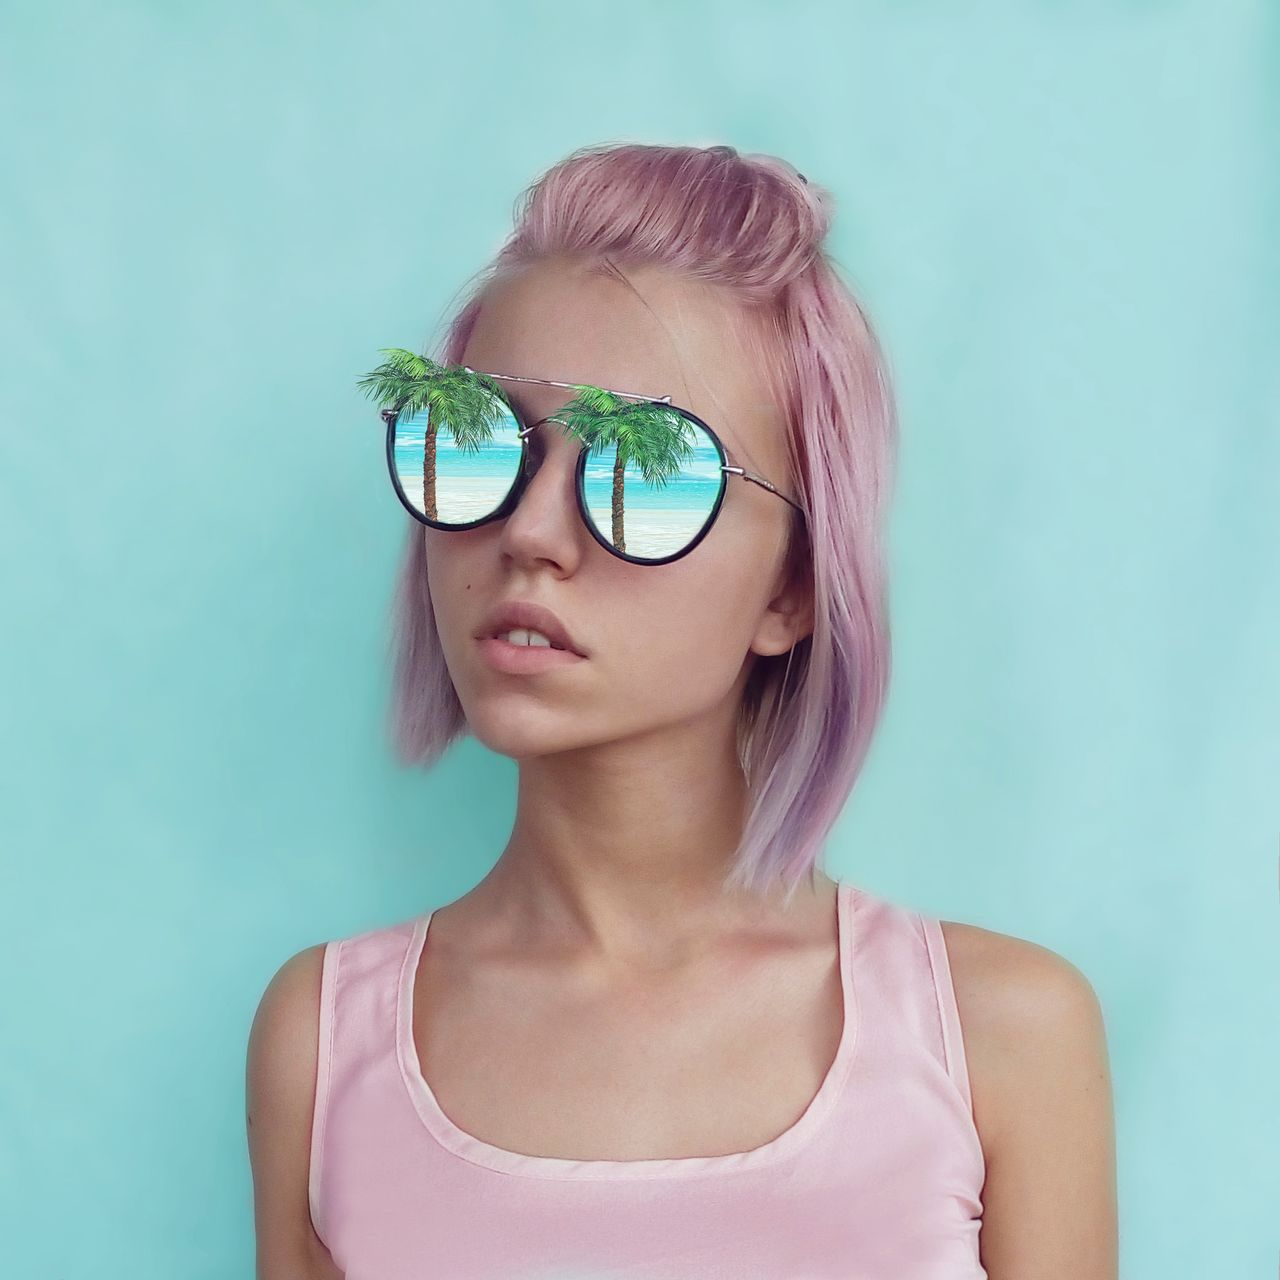 Close-up of young woman wearing sunglasses against blue background